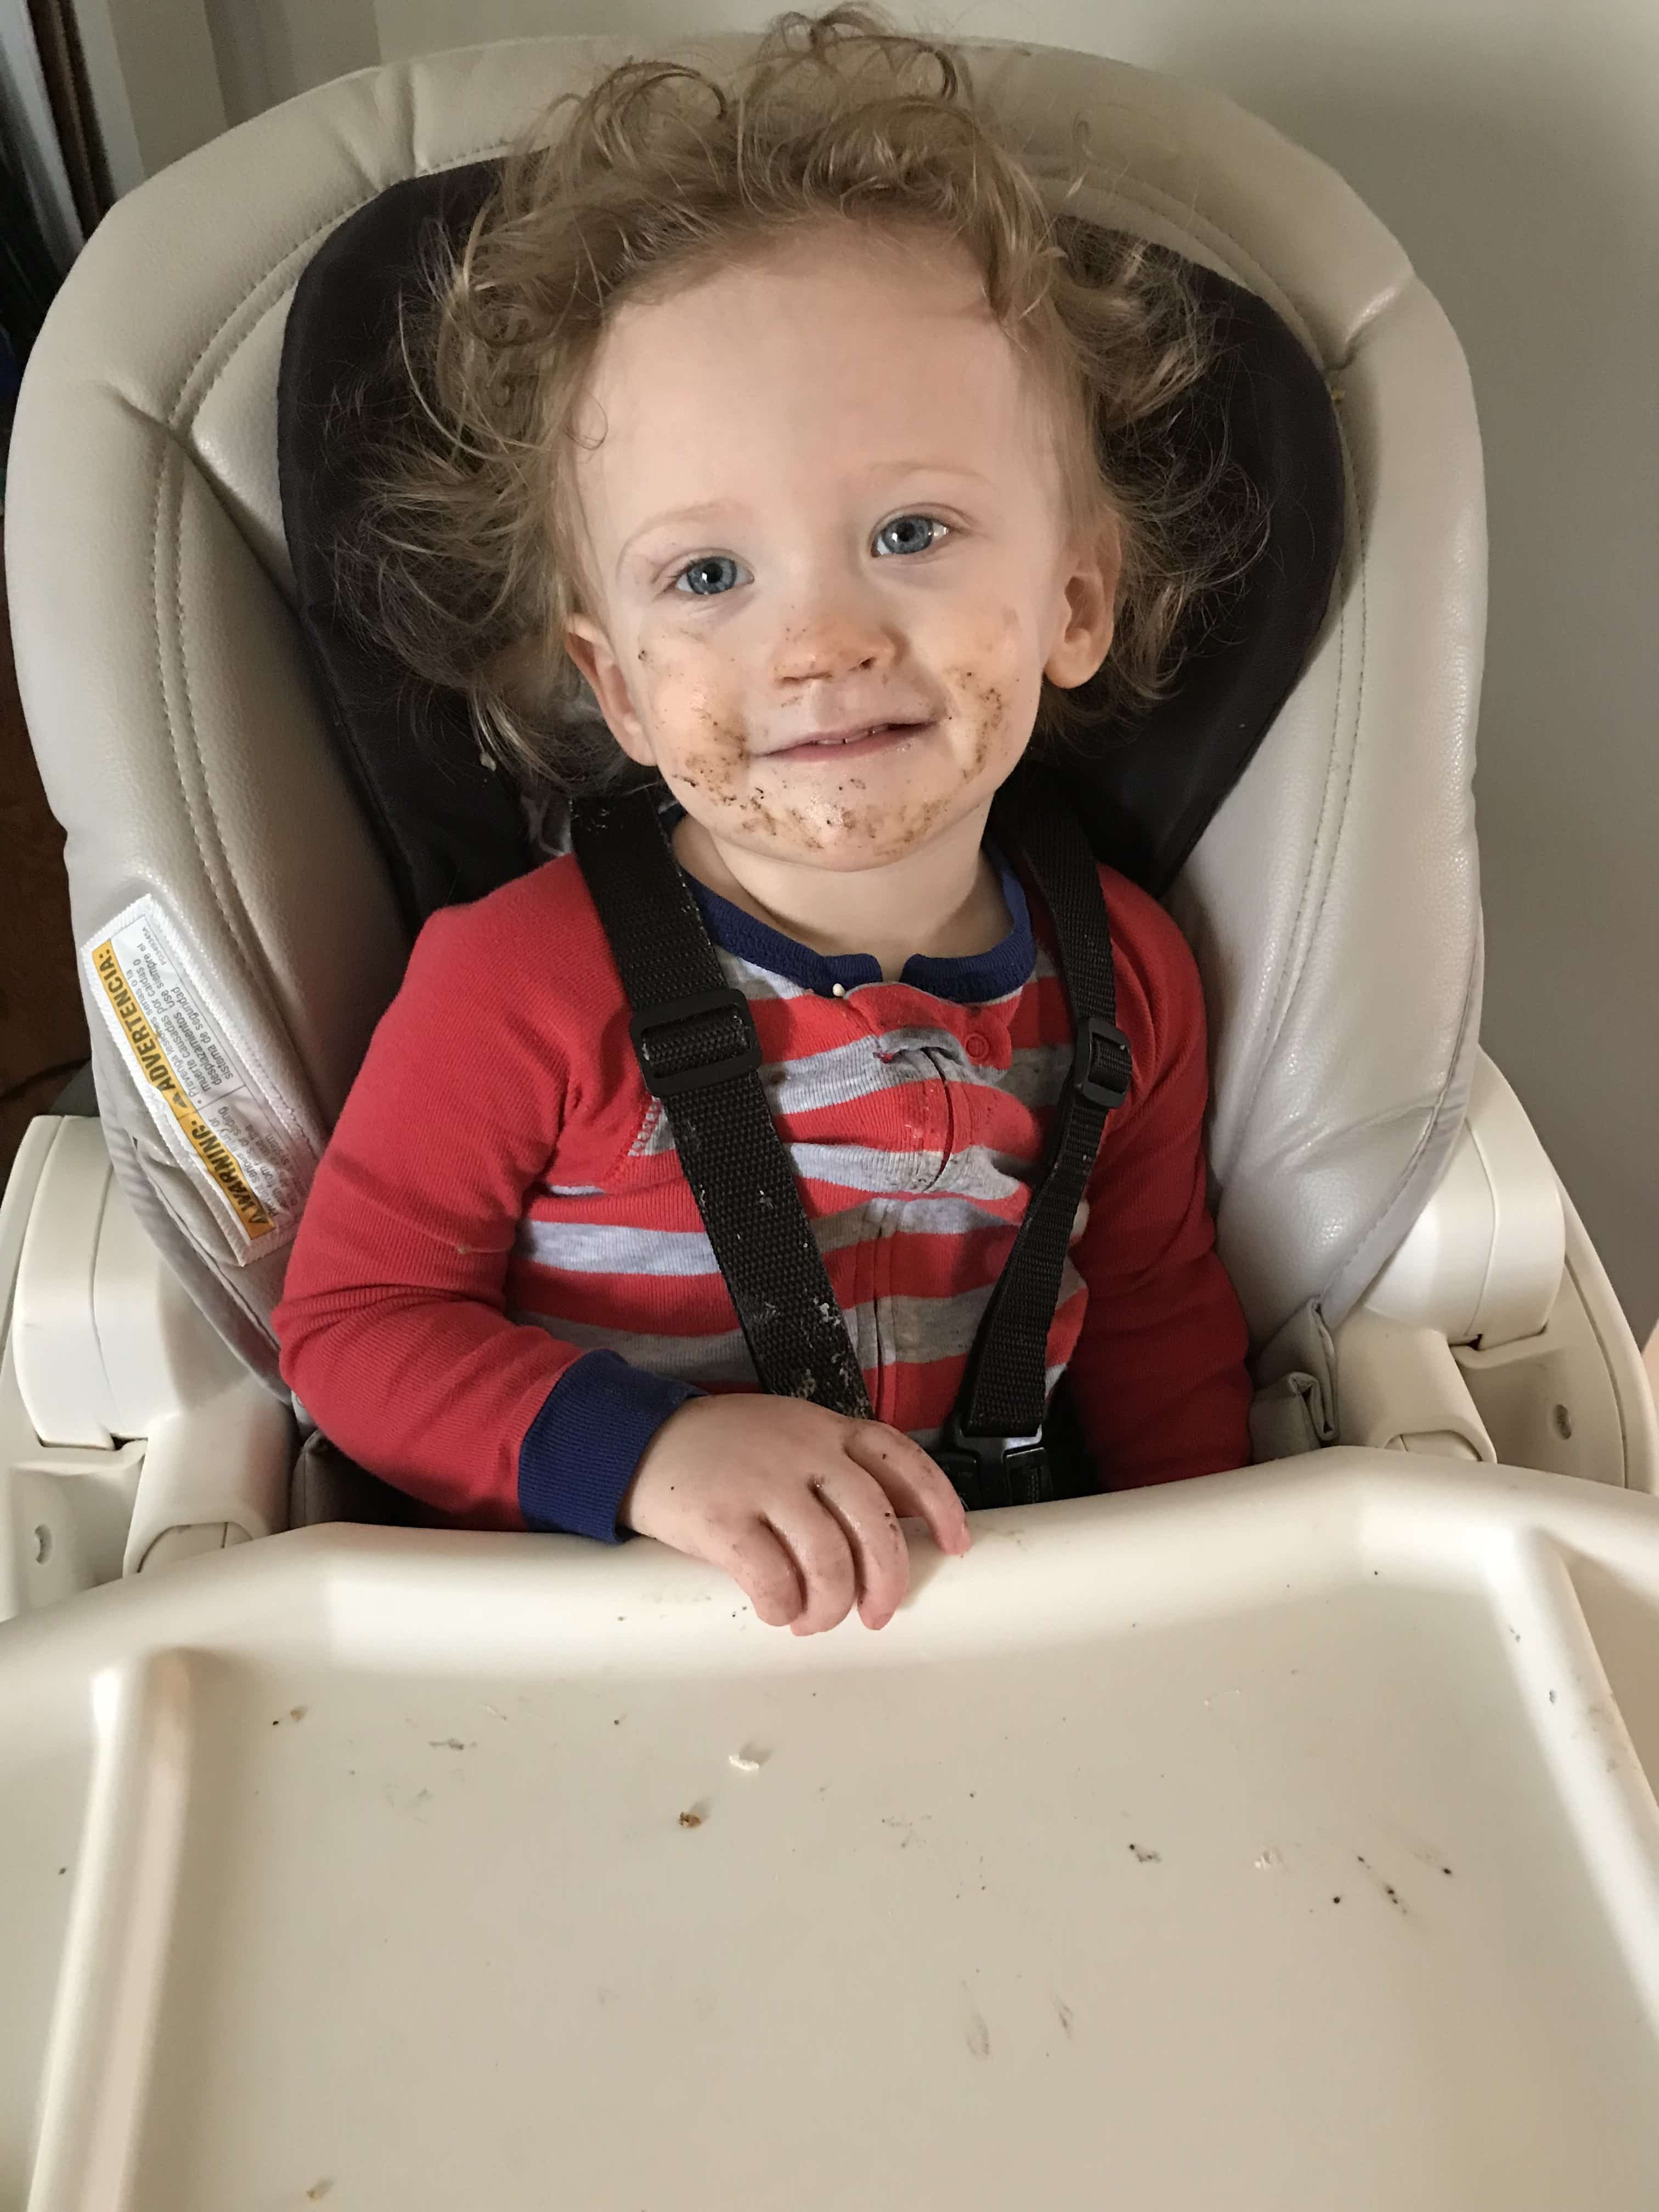 Messy baby after a meal